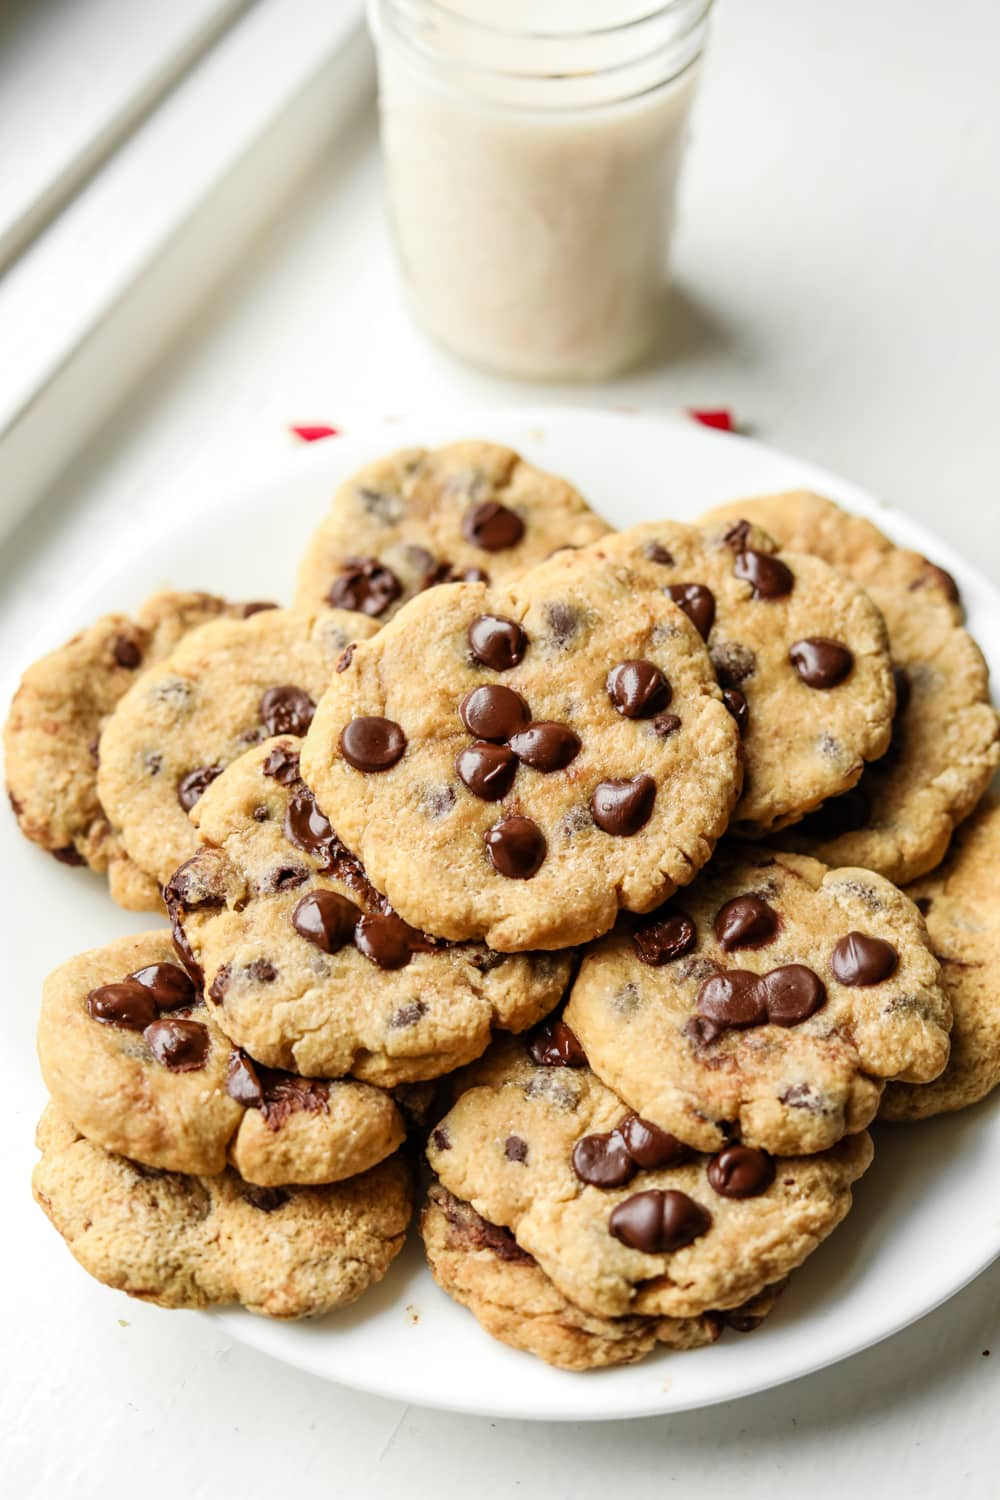 A white plate filled with chocolate chip cookies, and a glass of milk behind it.